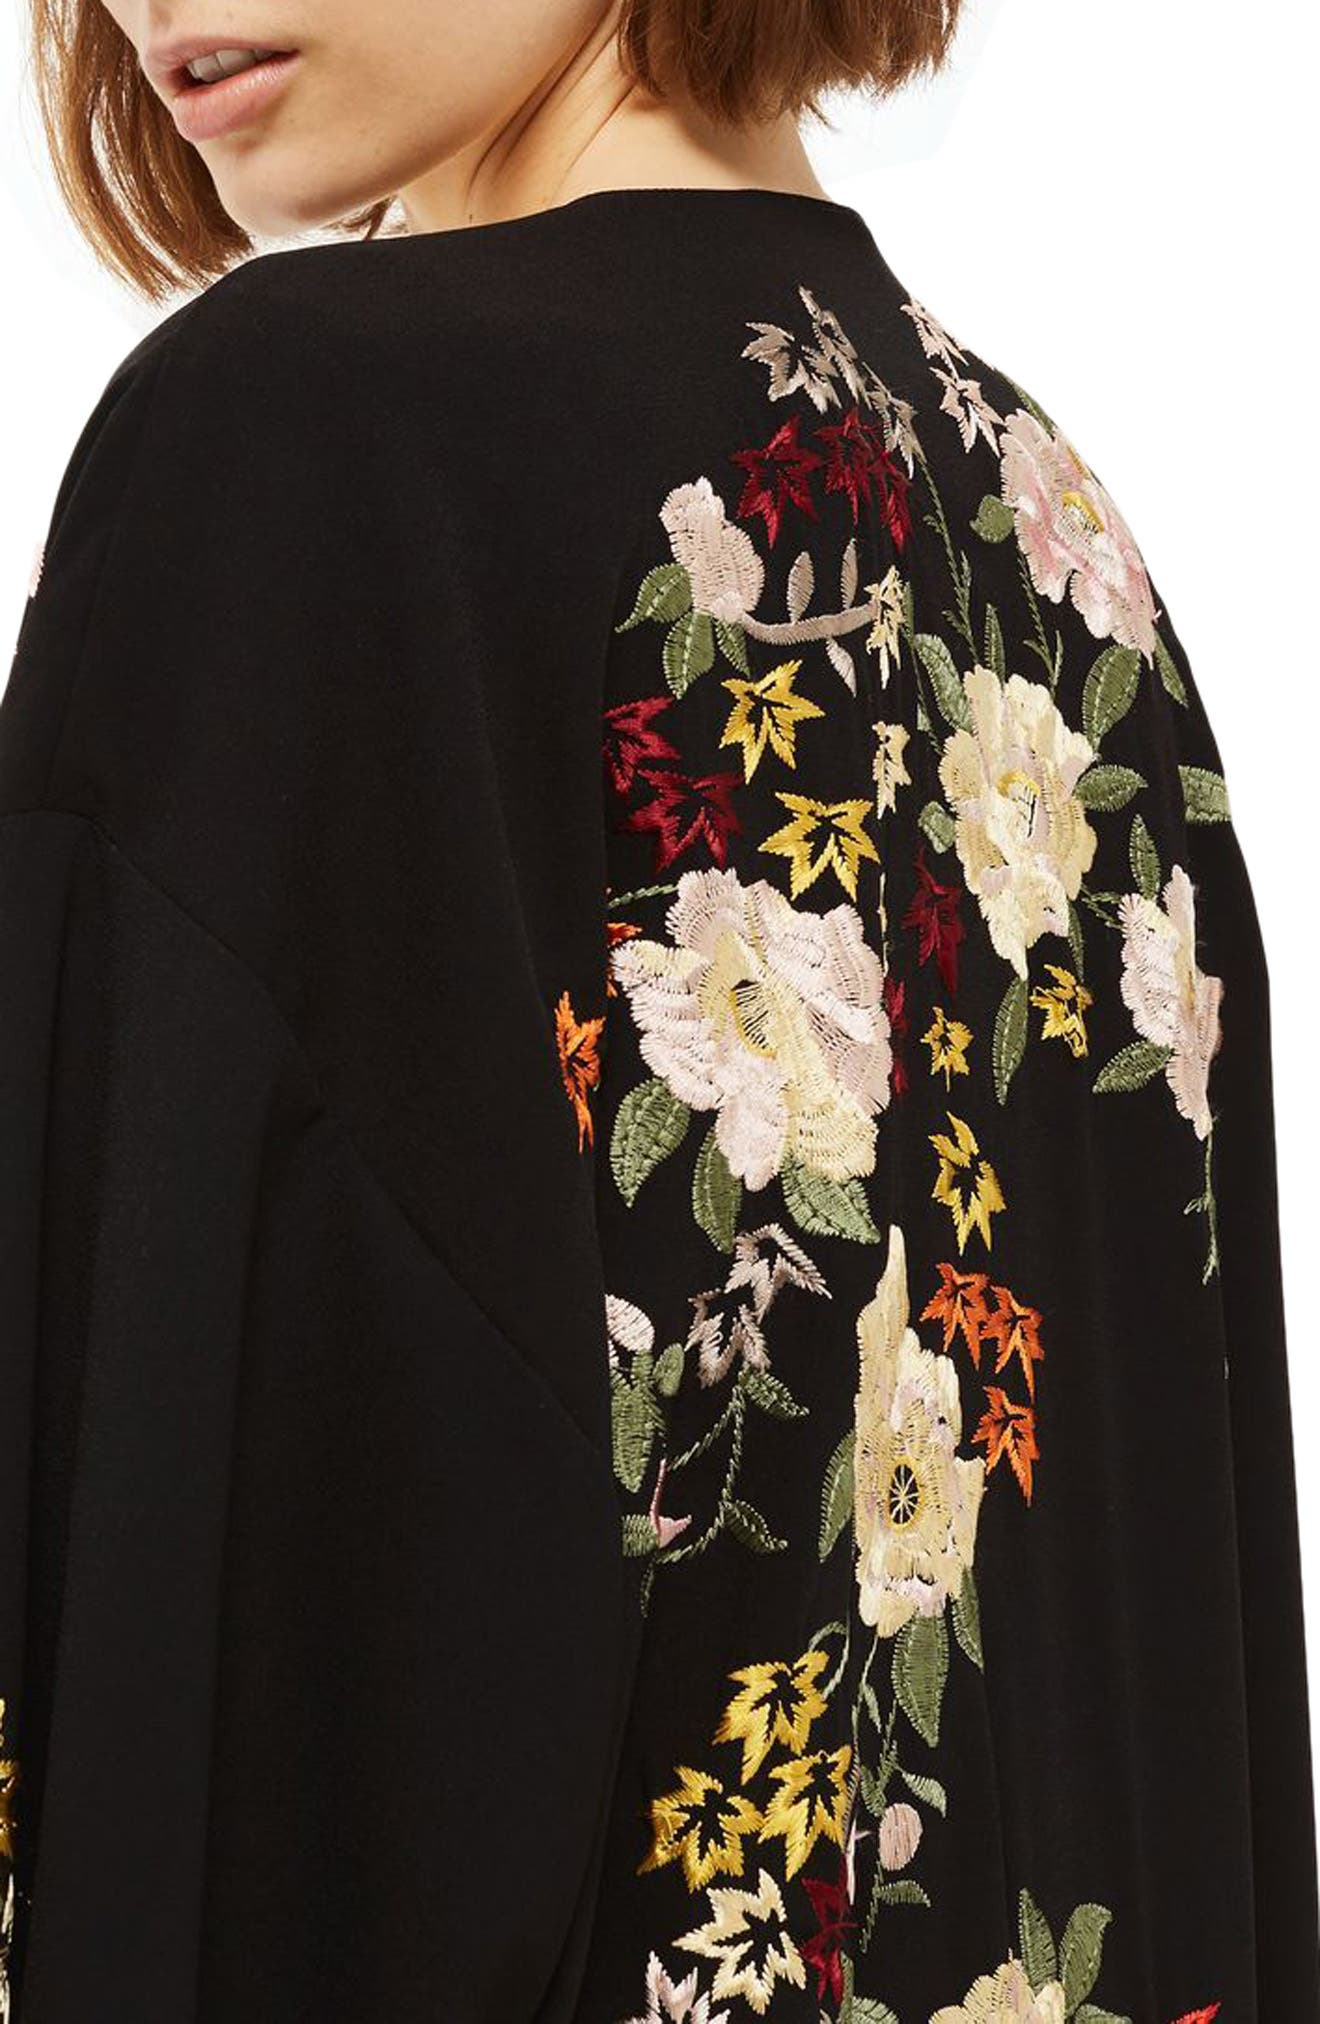 Floral Embroidered Kimono,                             Alternate thumbnail 3, color,                             Black Multi